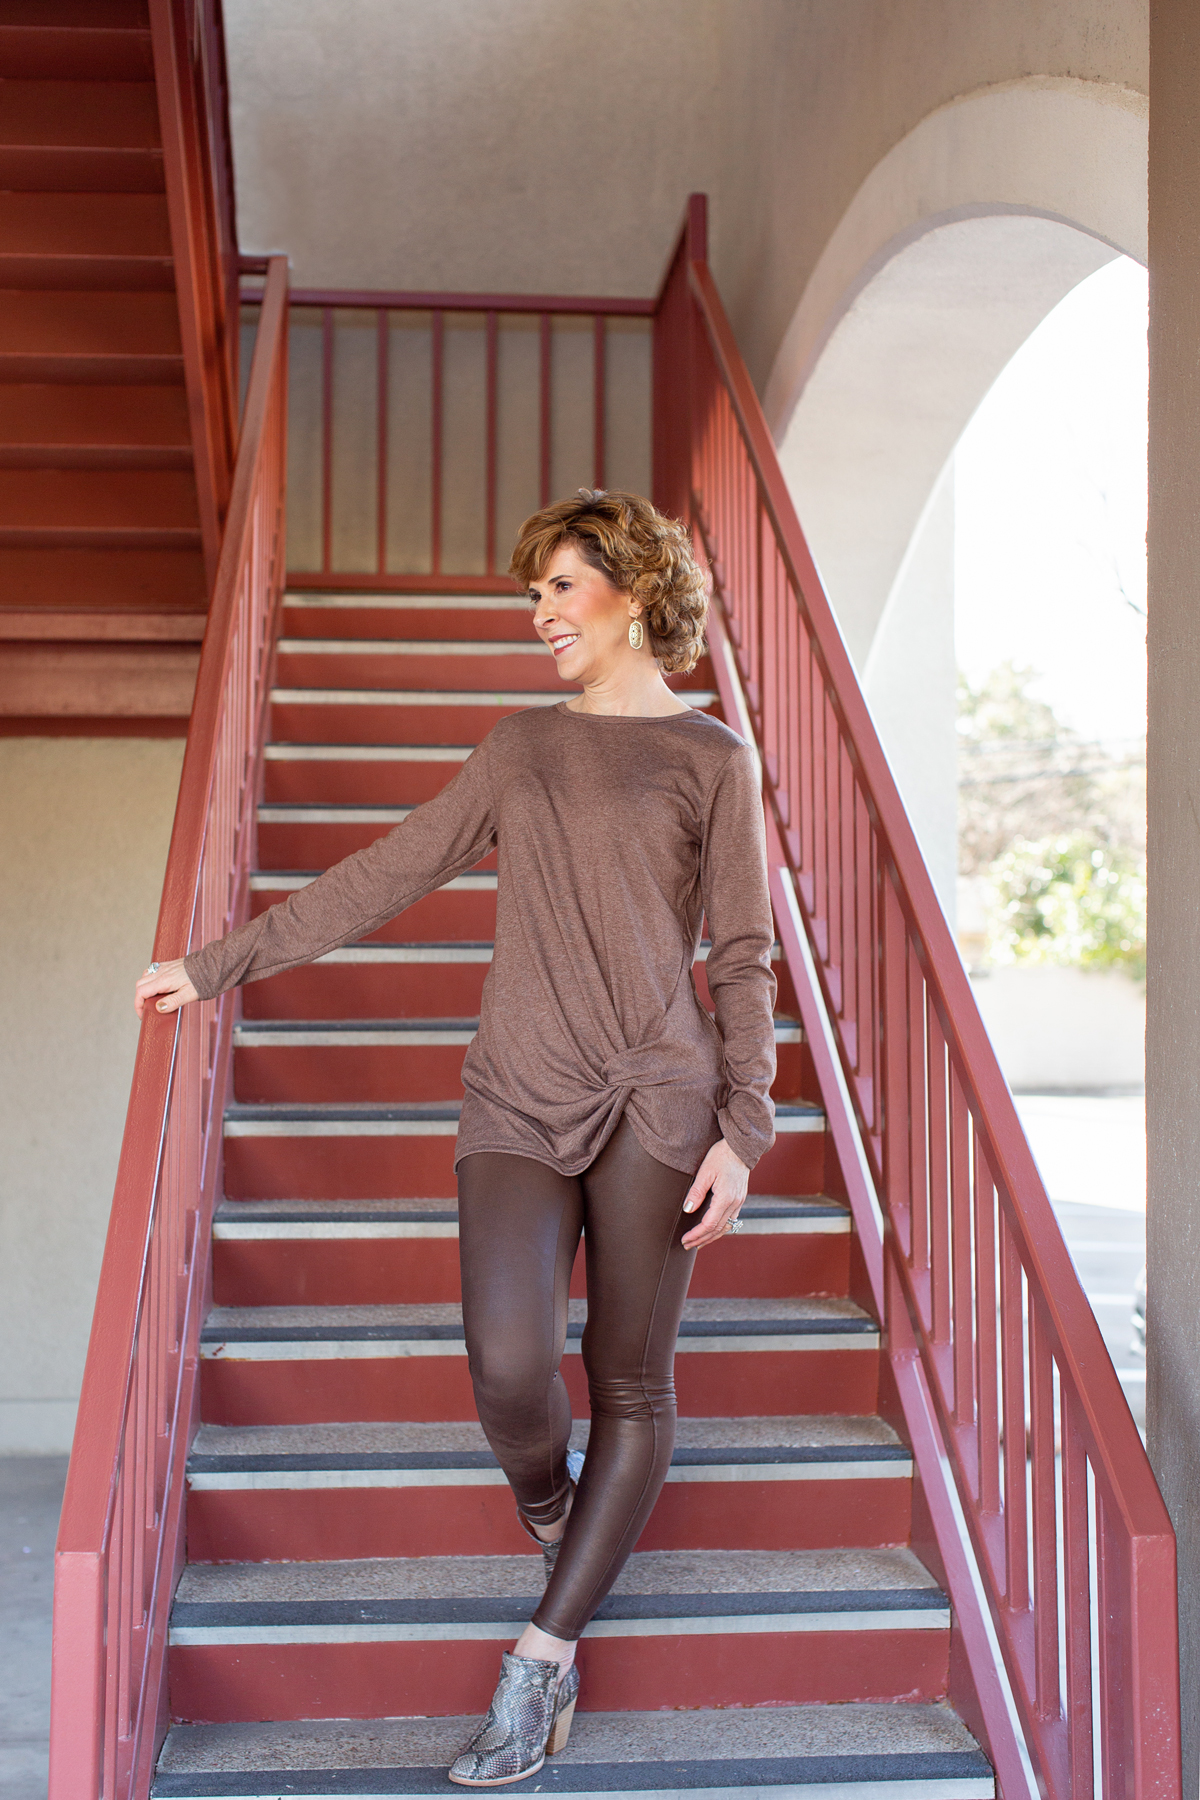 woman dressed in brown standing on rust colored staircase